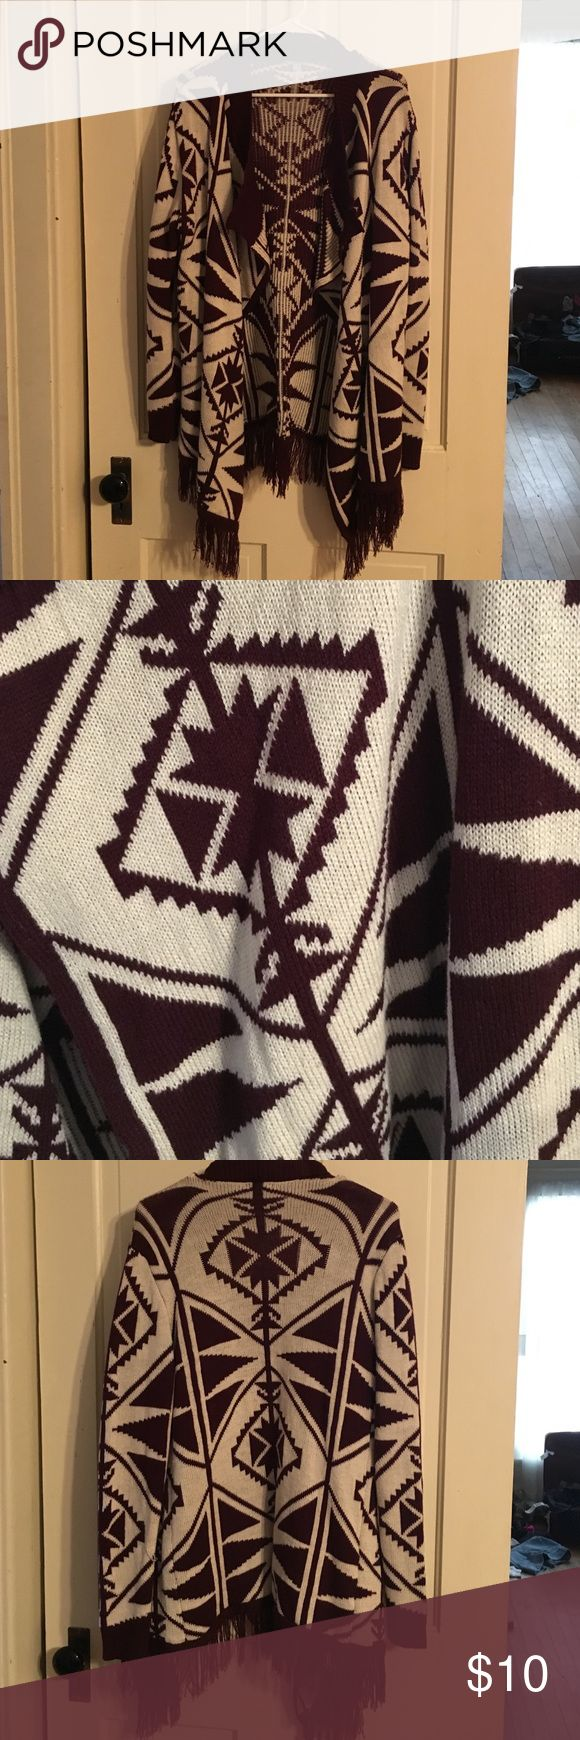 Aztec sweater cardigan This cardigan is in excellent condition a great splash of style and a great way to stay warm Charlotte Russe Sweaters Cardigans